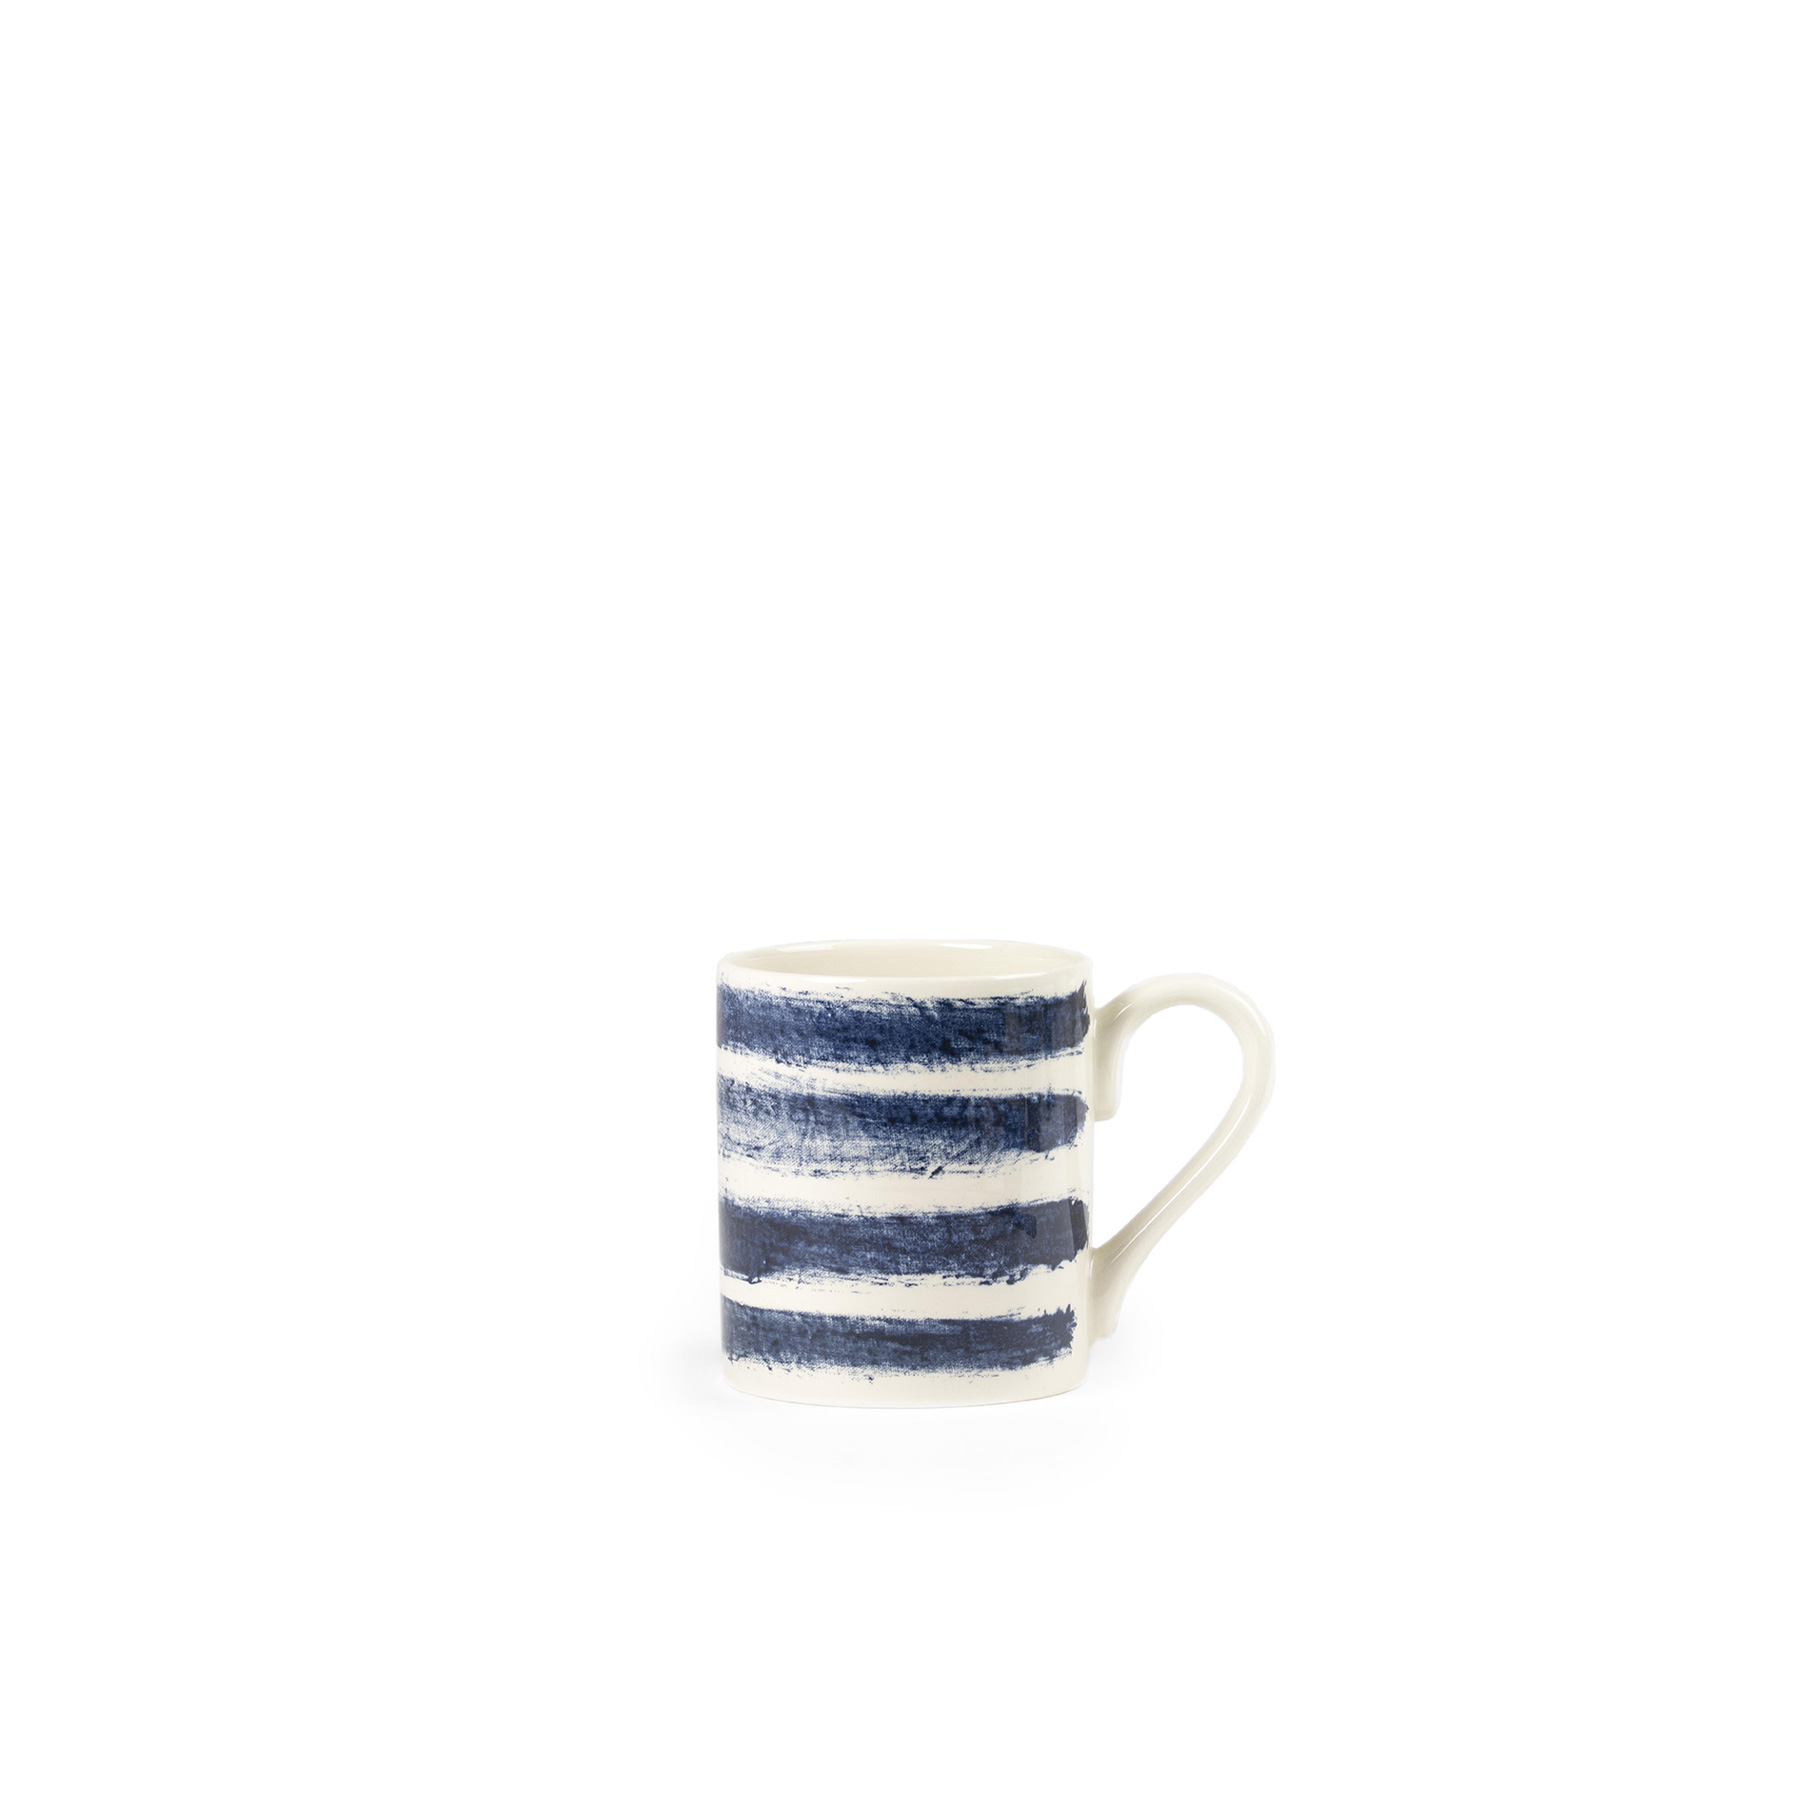 Indigo Rain Tankard - Faye Toogood's addition to her range of ceramic designs for 1882 Ltd. puts a fresh spin on the forms and traditions of English creamware. Indigo Rain reinterprets the homely familiarity of blue-and-white striped crockery in a new design informed by the spirit of serendipitous discovery. Representing a streamlined take on our ceramic heritage, the fine earthenware employs the familiar tones of English Delftware: cream offset with a rich, deep blue. Broad bands of indigo glaze, like painterly washes of watercolour, are applied to rough canvas and then transferred to the pieces – the characteristic grain of the fabric imbues the delicate ceramics with the hardworking spirit of dark-dyed denim.  | Matter of Stuff